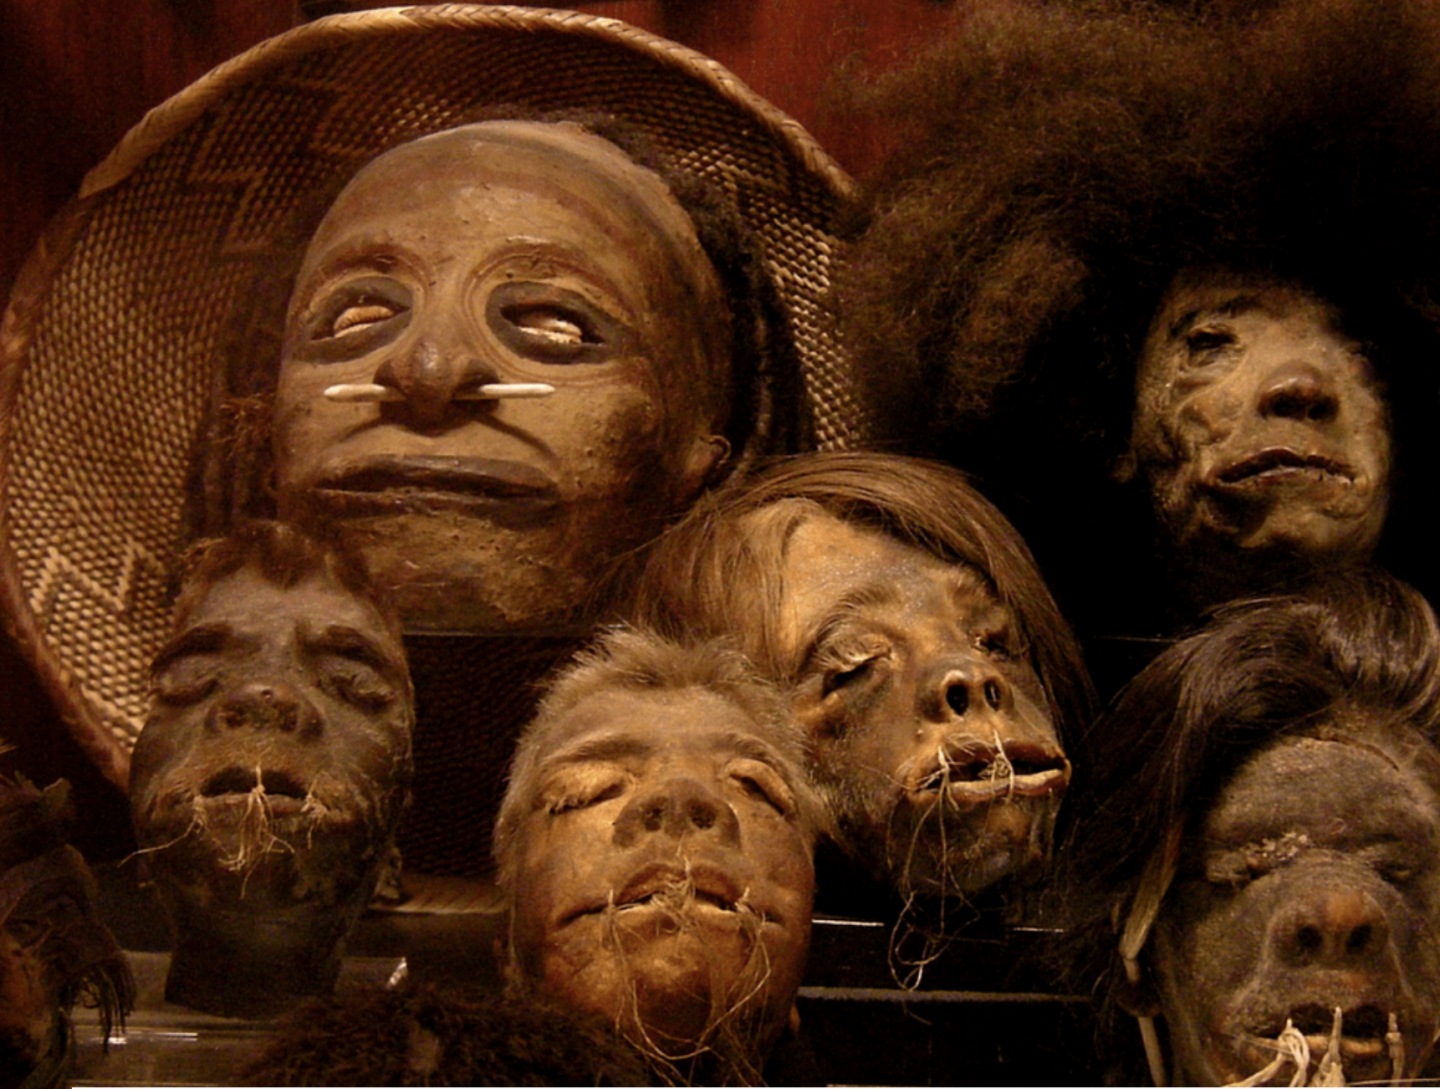 'How did they do it? Shrunken Heads' - a post by The New Weird. 19 February 2019